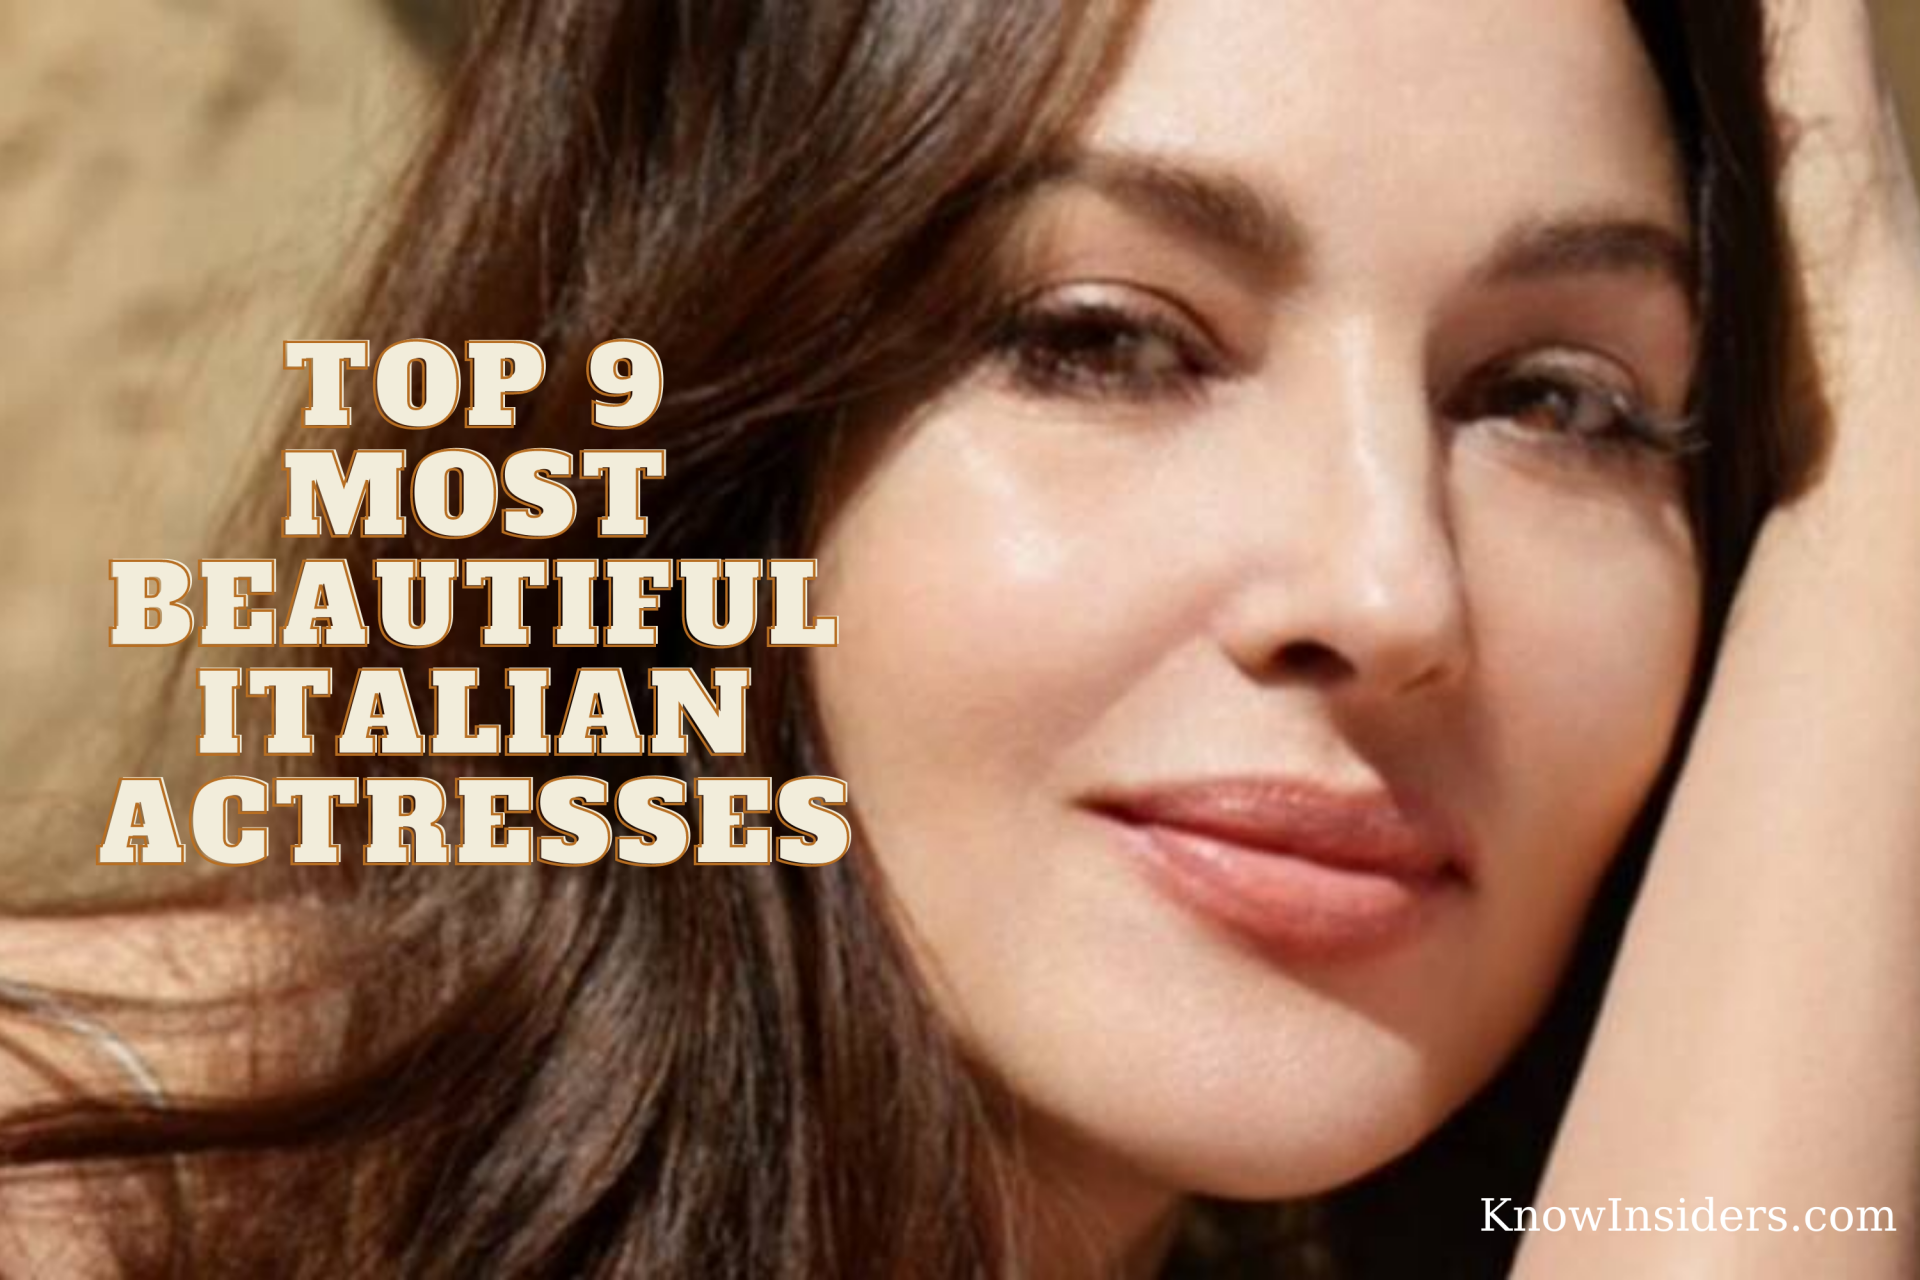 Top 9 Most Beautiful Italian Actresses - Updated